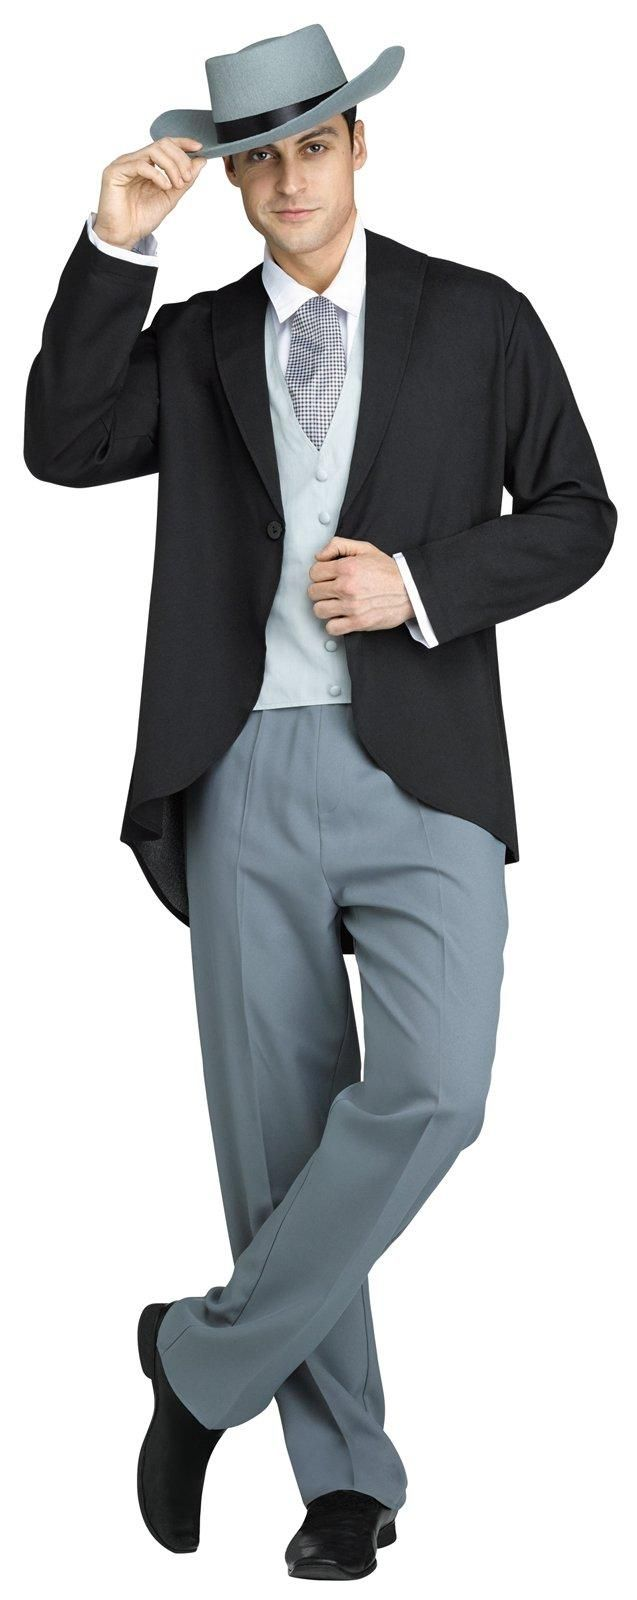 gone with the wind rhett butler costume for men from buycostumes